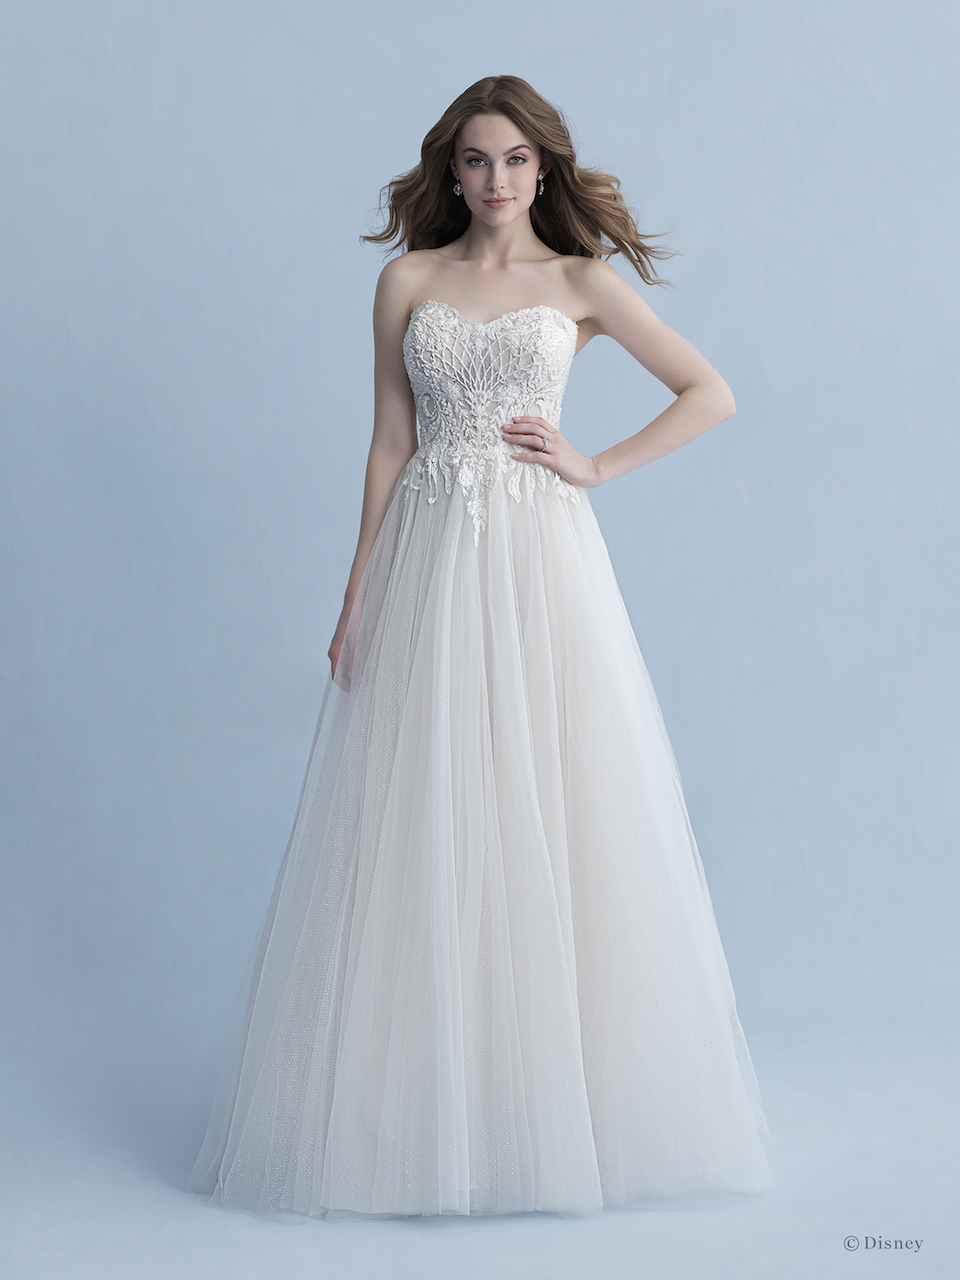 Strapless Sweetheart Neckline A Line Wedding Dress With Lace Bodice Tulle Skirt And Detachable Cape Kleinfeld Bridal